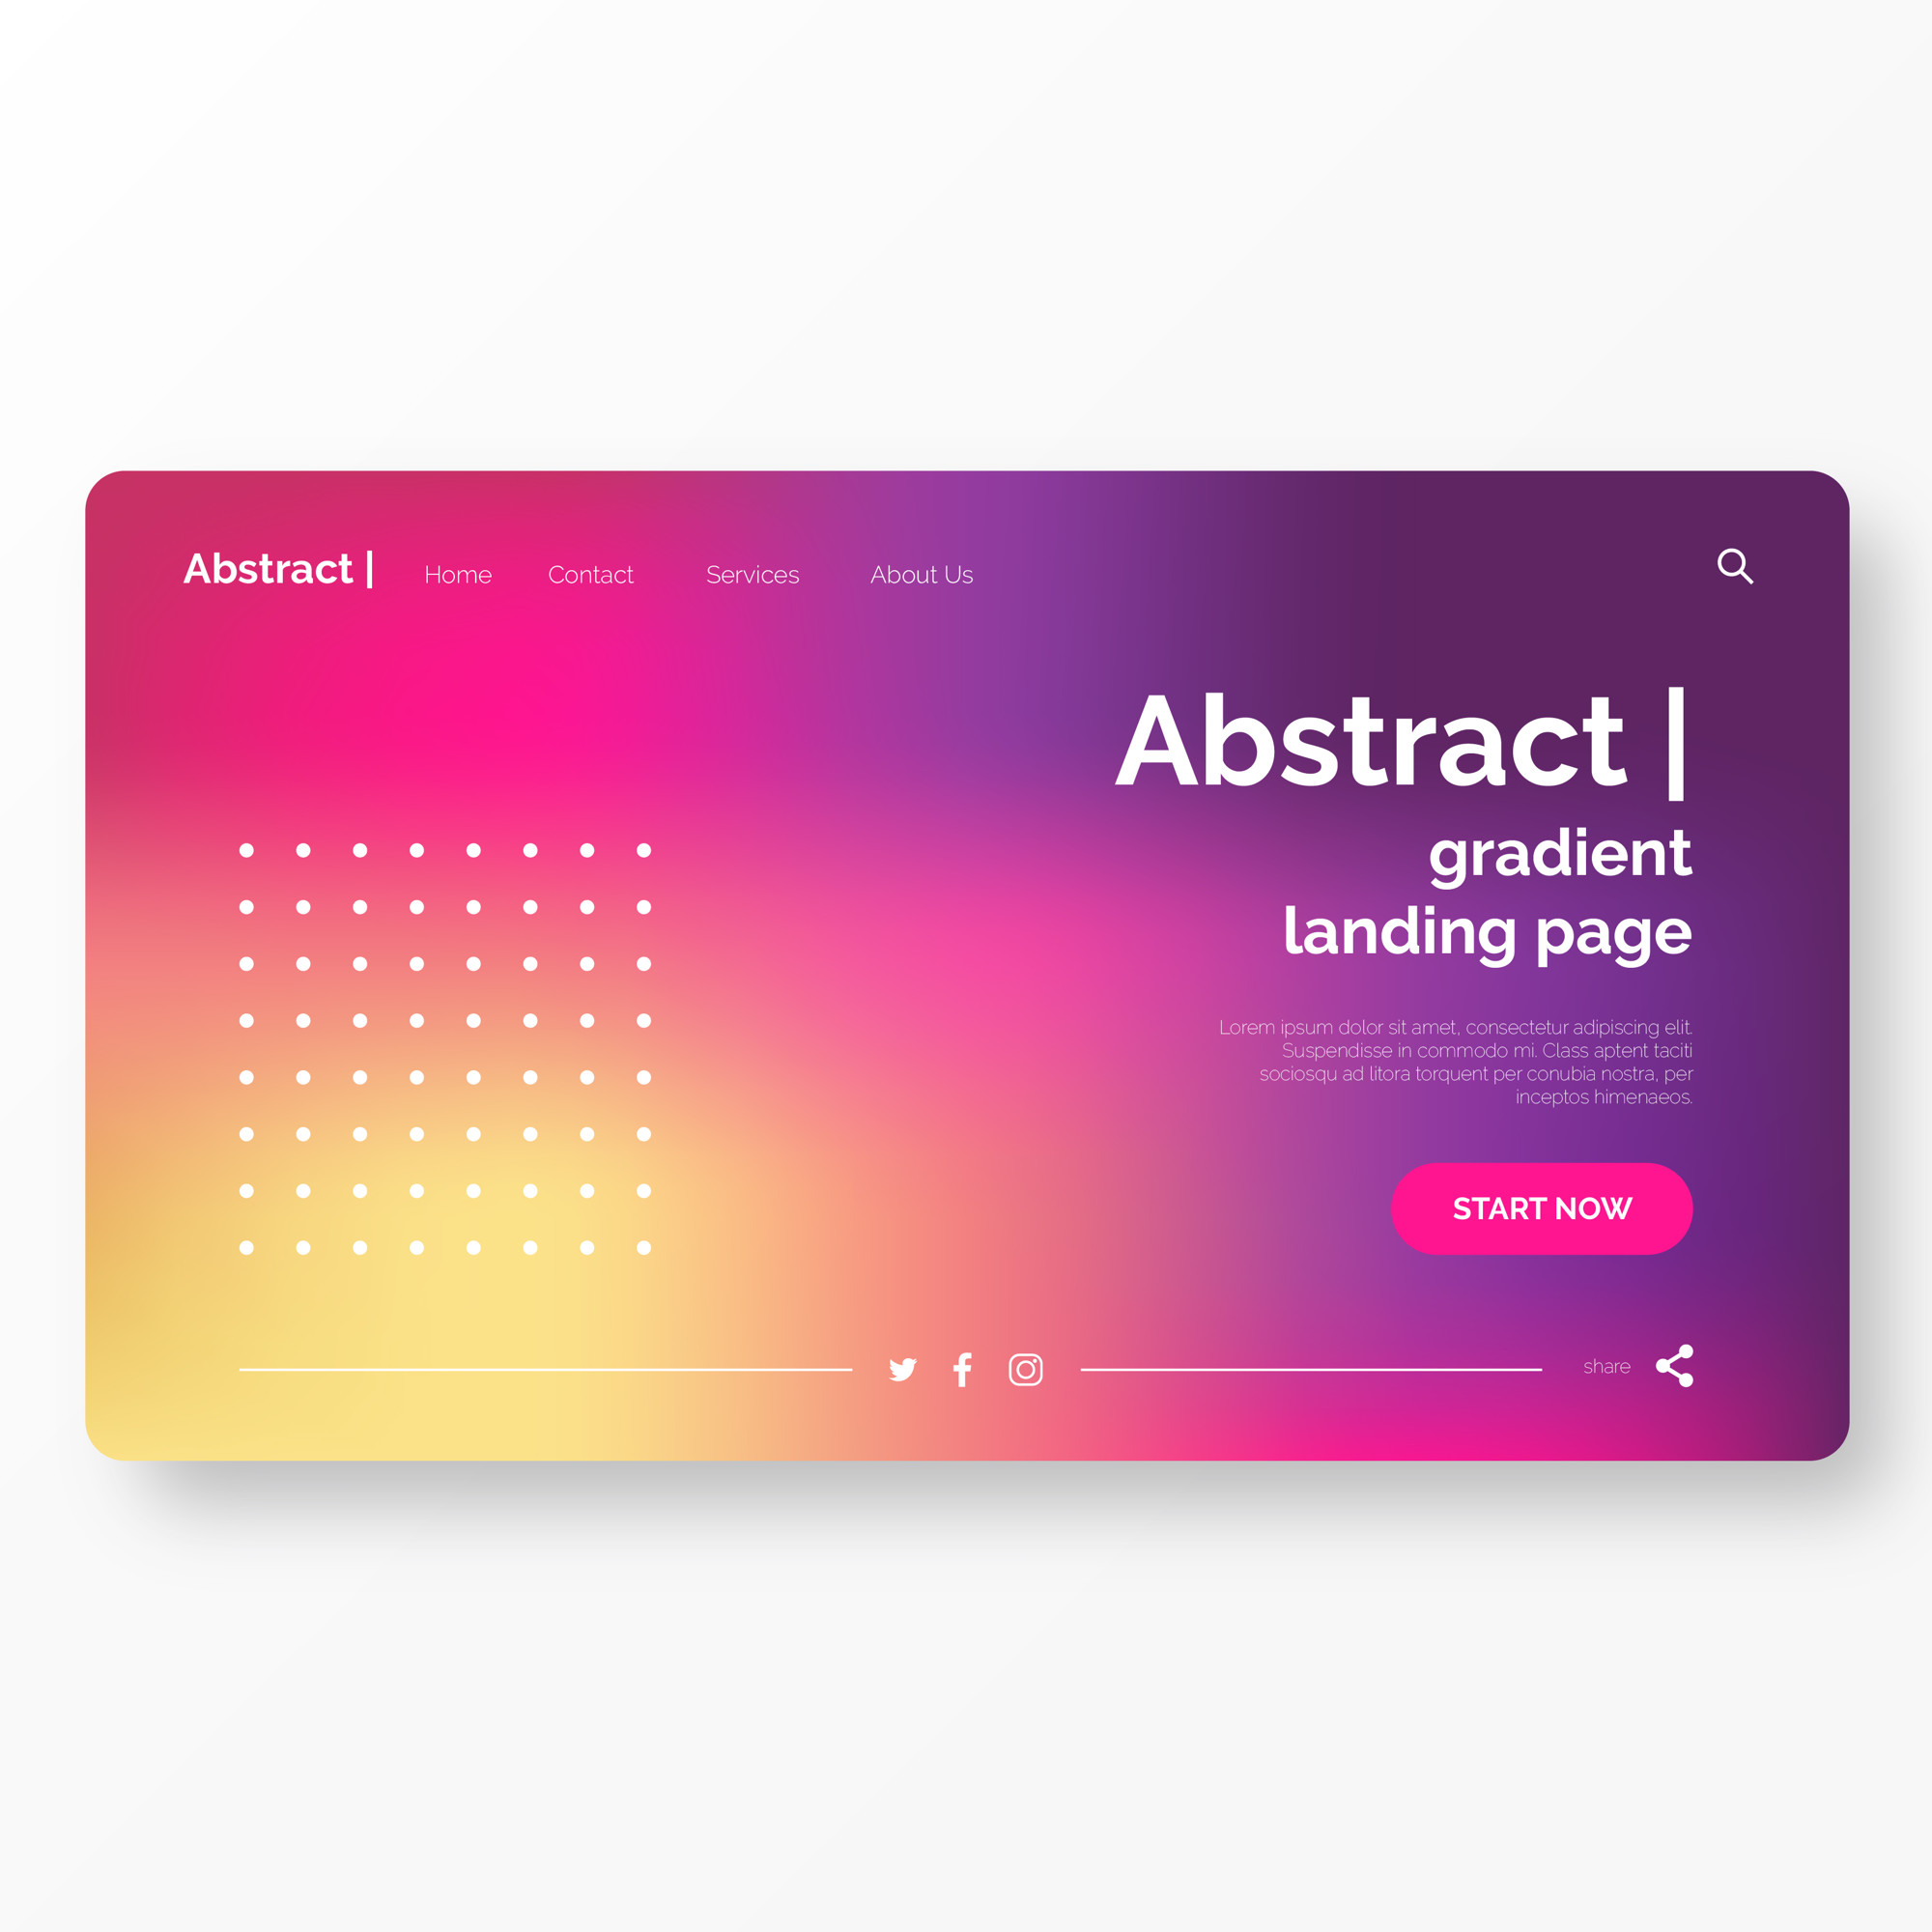 Landing Page Template with Abstract Background